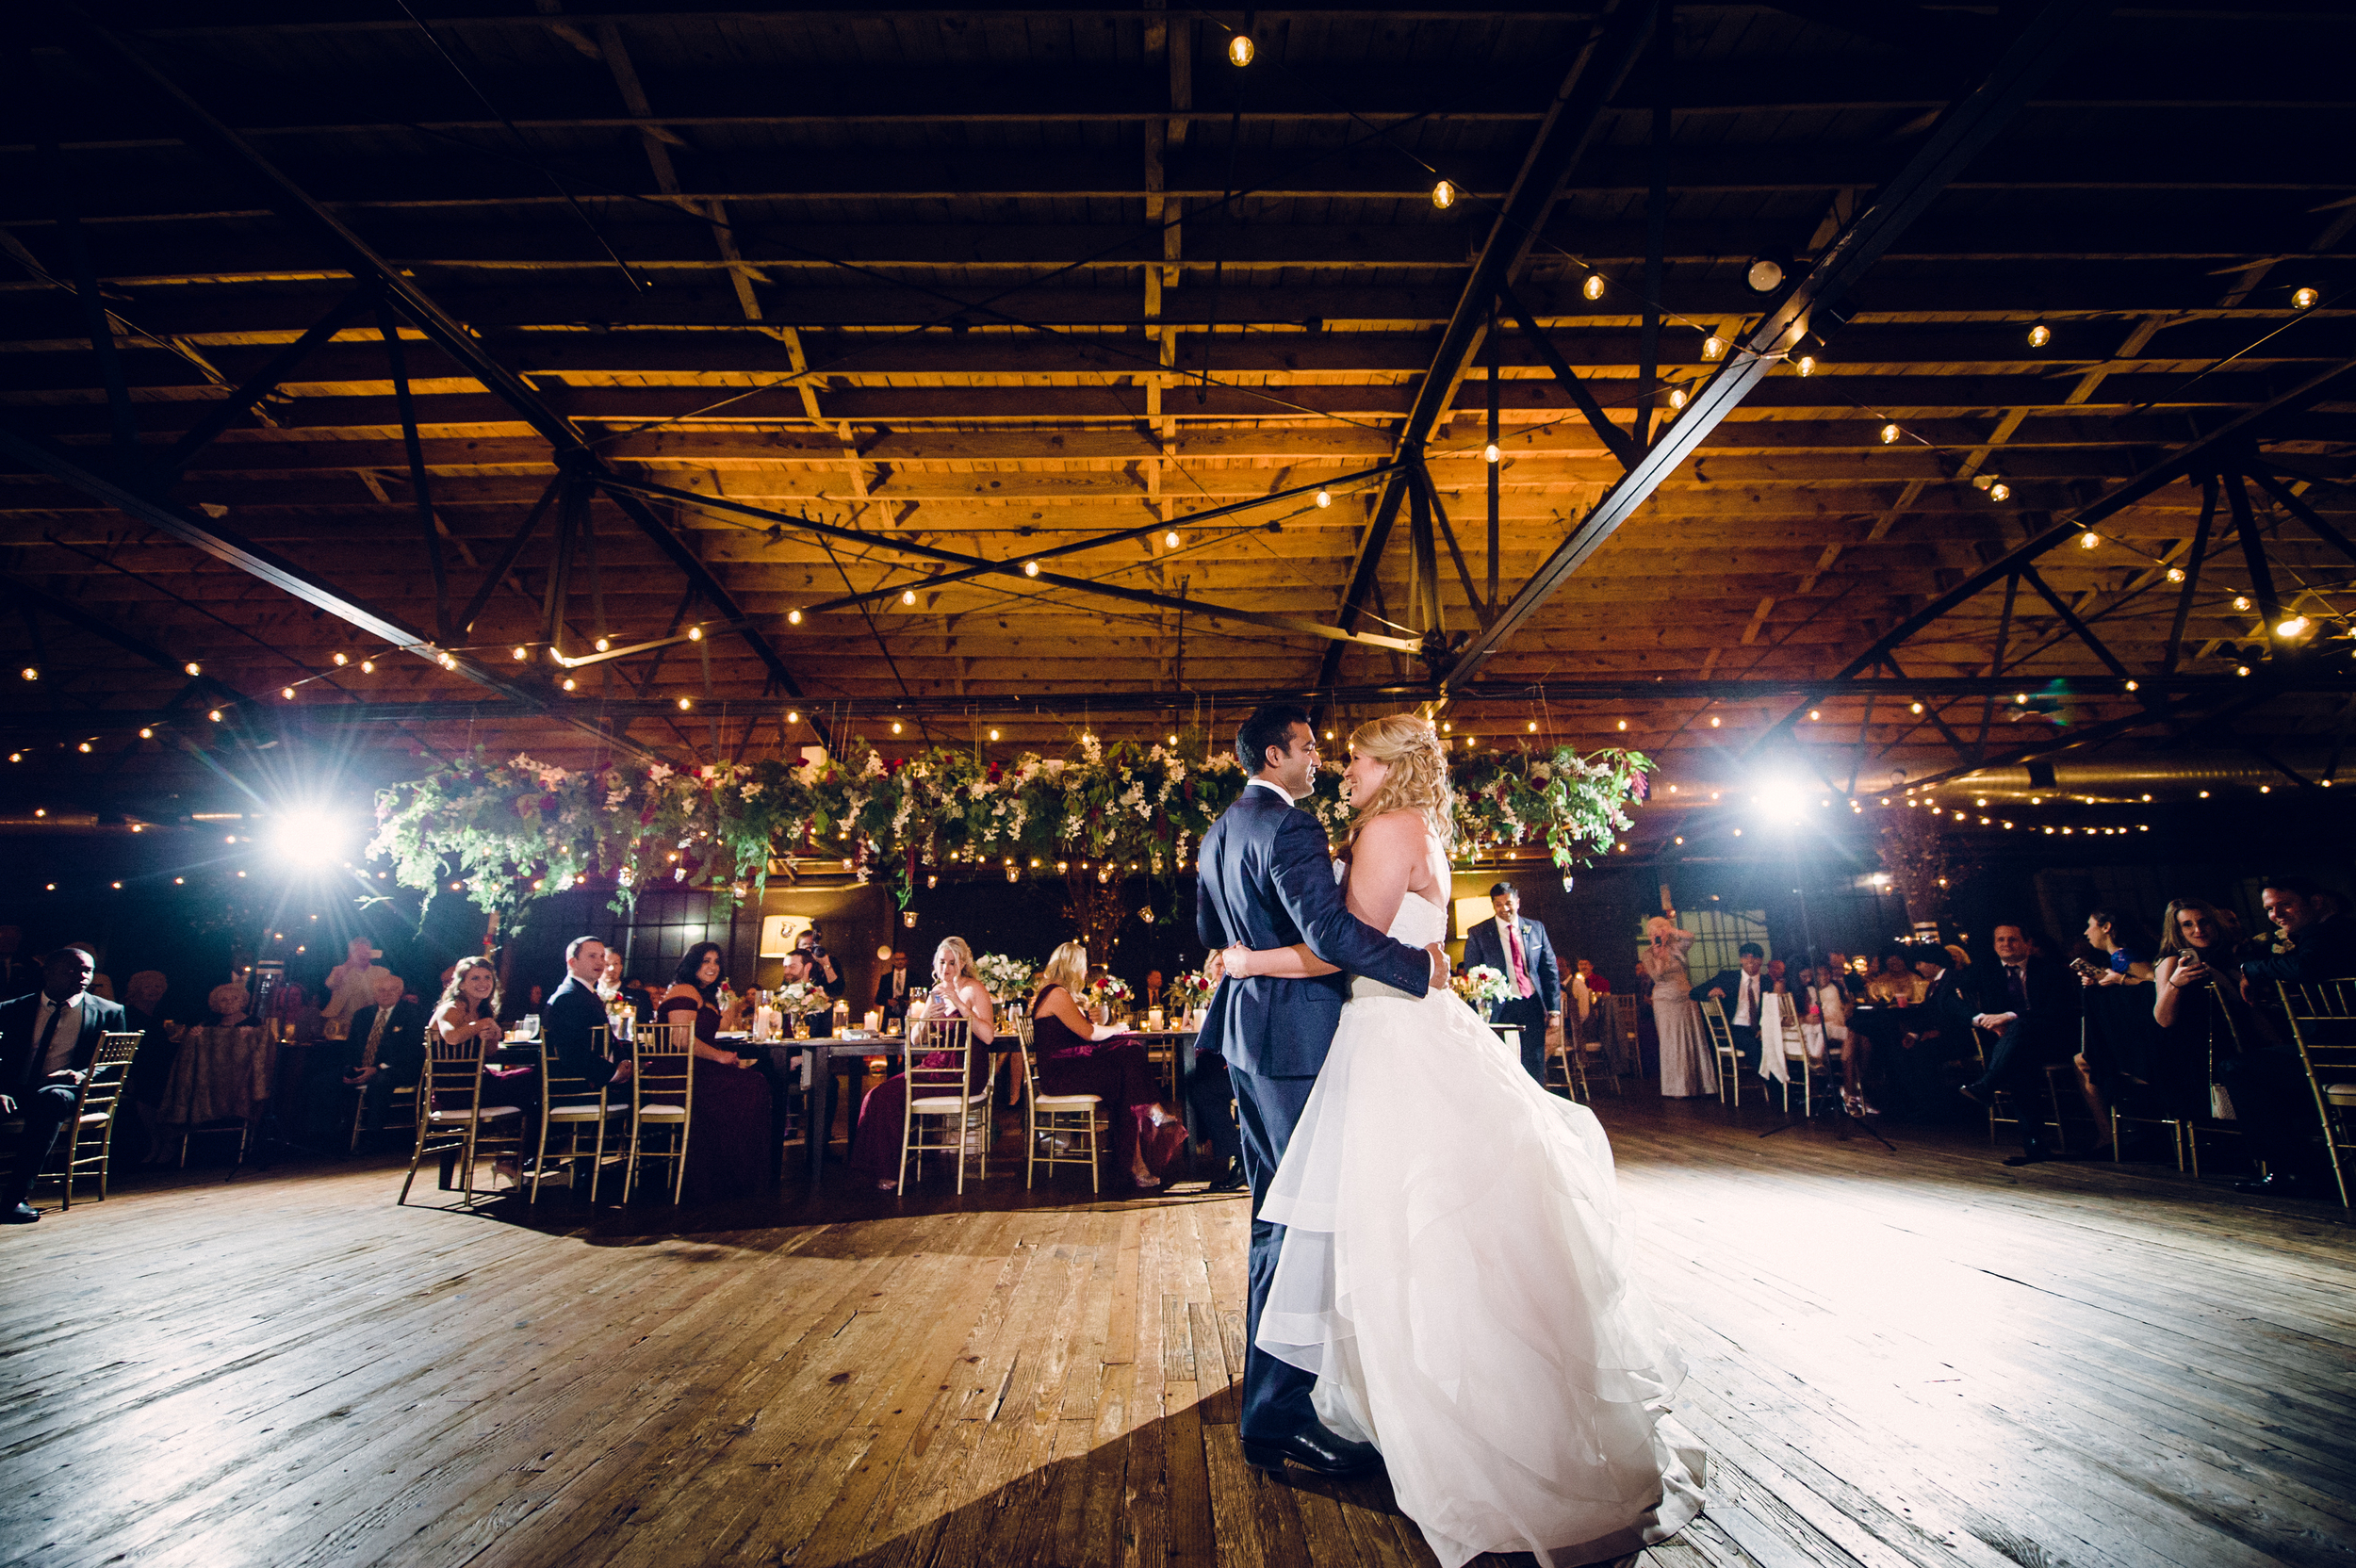 summerour-studio-atlanta-wedding-venue-first-dance